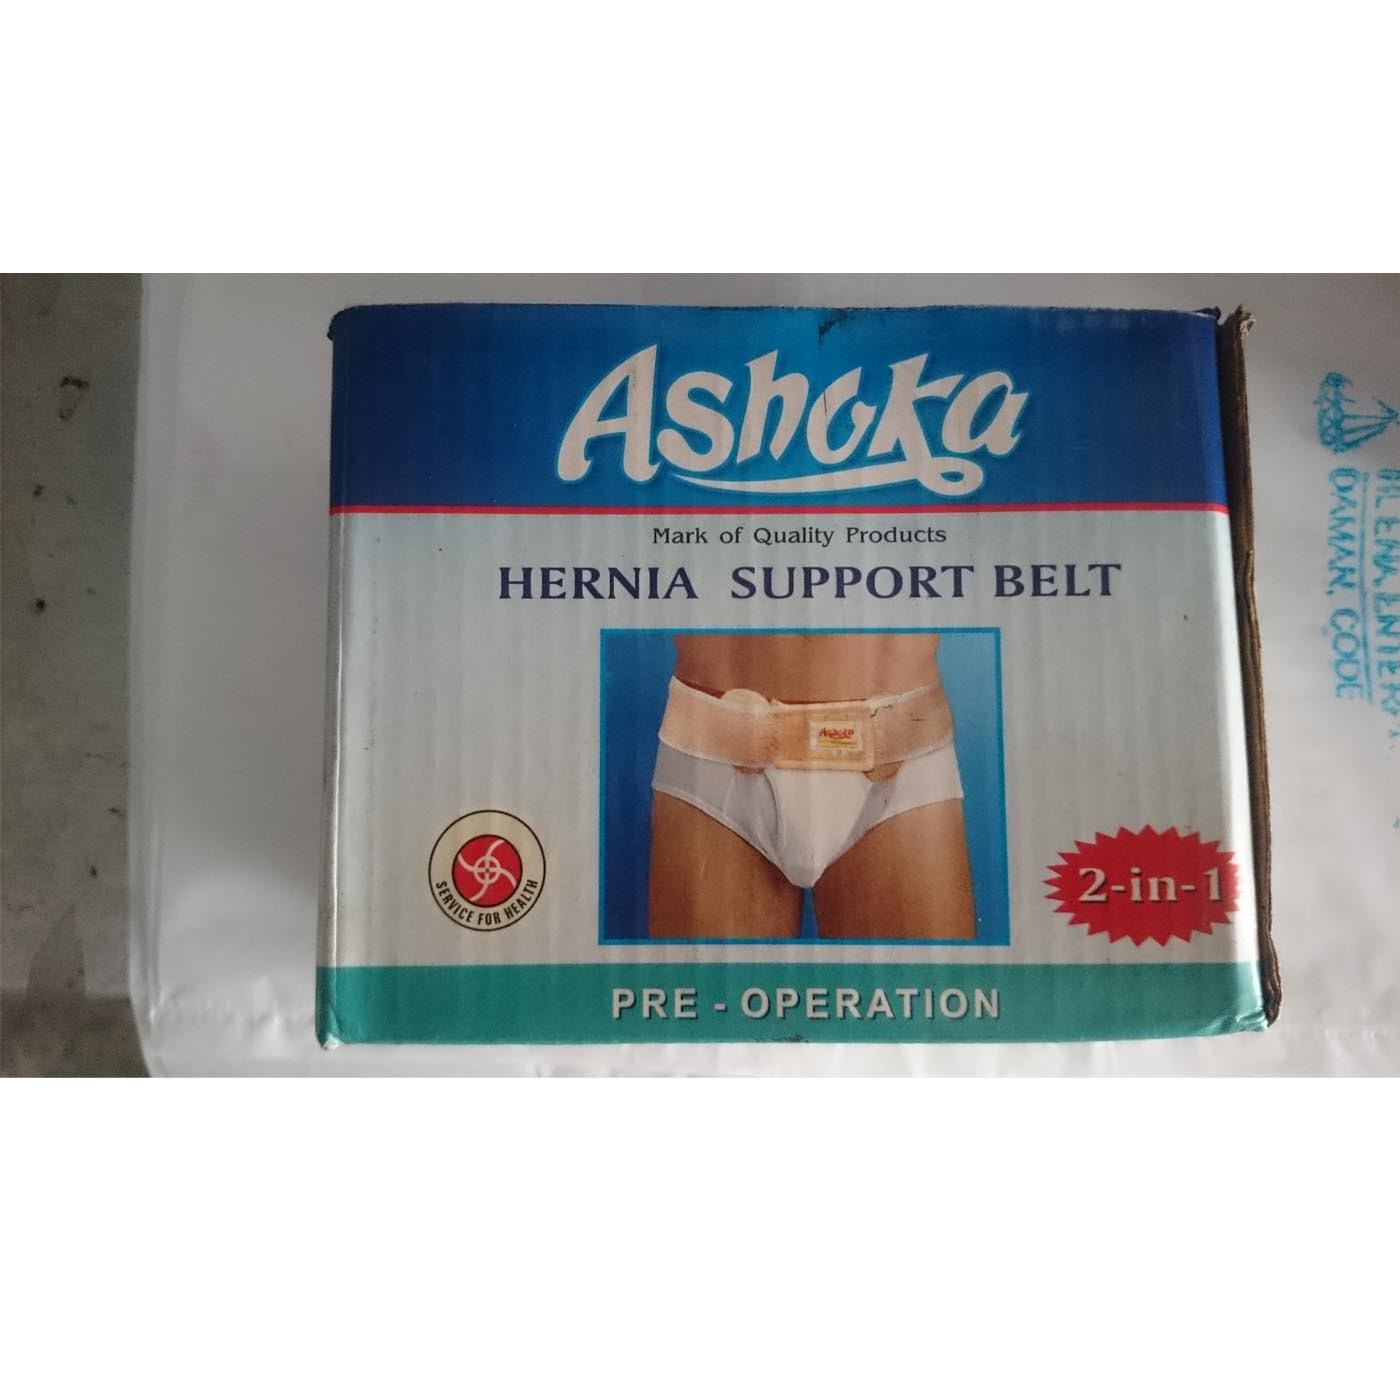 Hernia Support Belt In Cochin, Hernia Support Belt In Kochi, Hernia Support Belt In Ernakulam,               Hernia Support Belt In Kerala, Hernia Support Belt In Tripunithura,                                                                                                                                            For More details Contact us on +91 9446232179 or Visit us at http://www.royssurgicals.com/